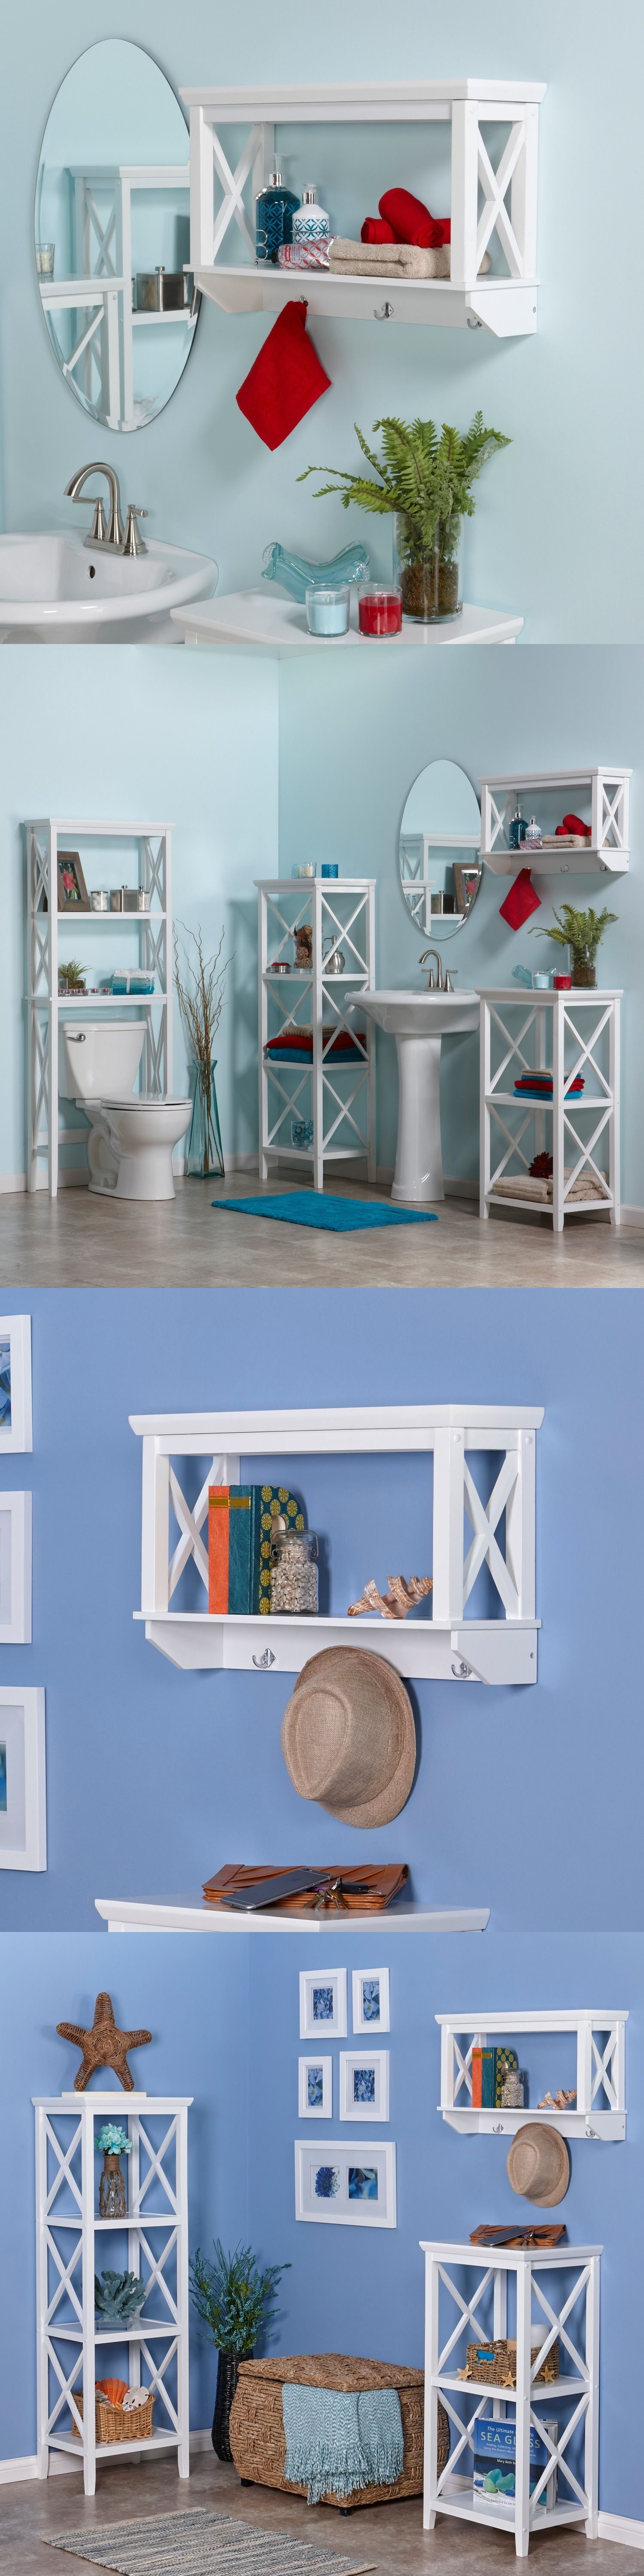 Shelves 31385: Bathroom Furniture Space Saver Over Toilet Wall ...